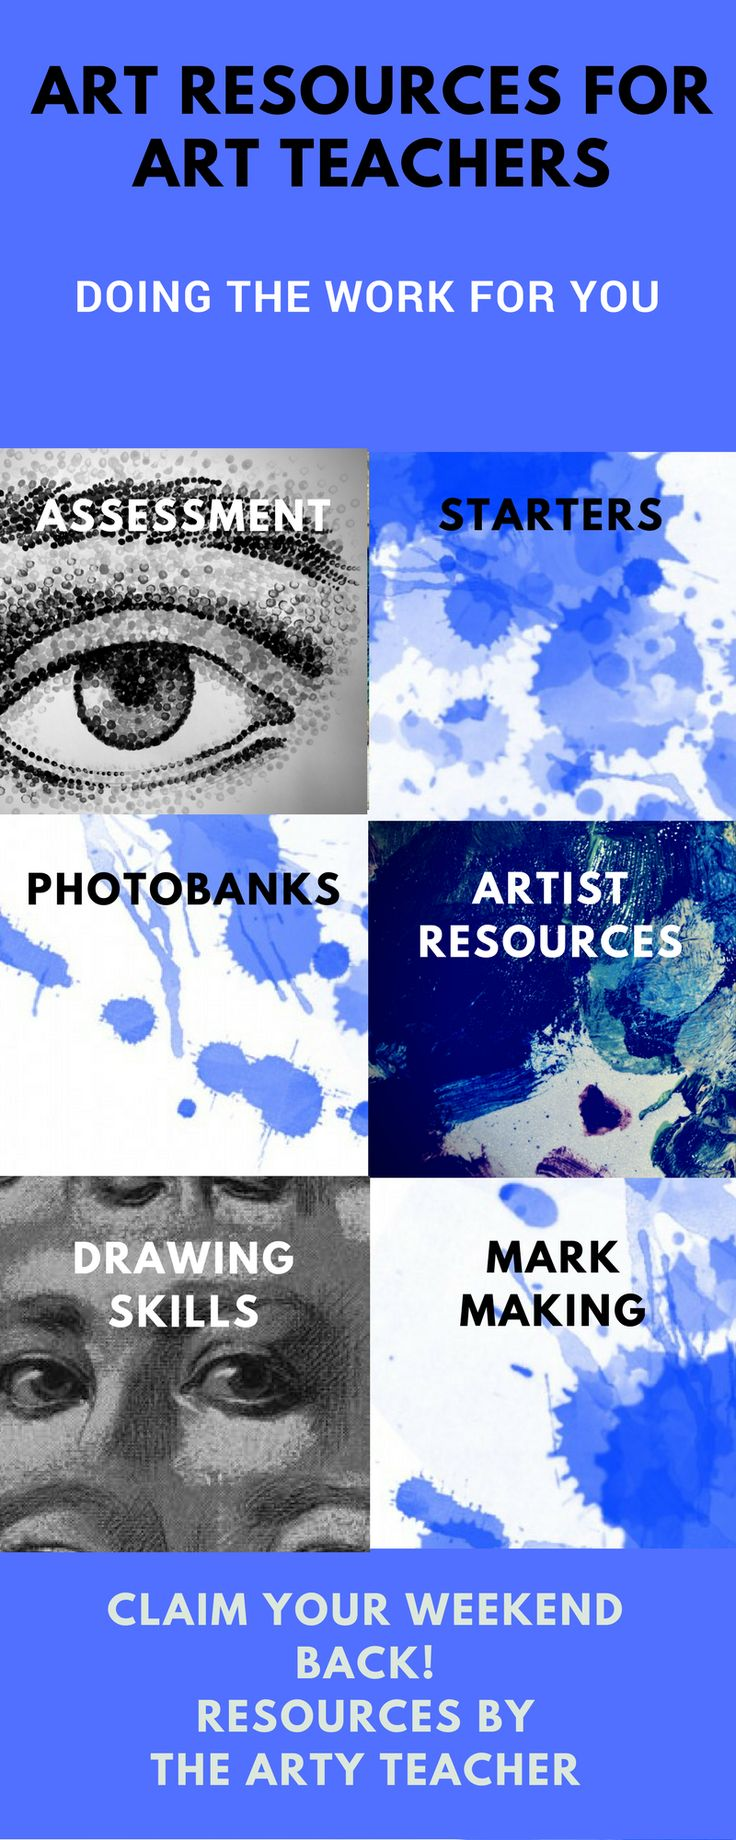 Art resources for Art Teacher. Art Teacher resource. Teaching Art & Design.